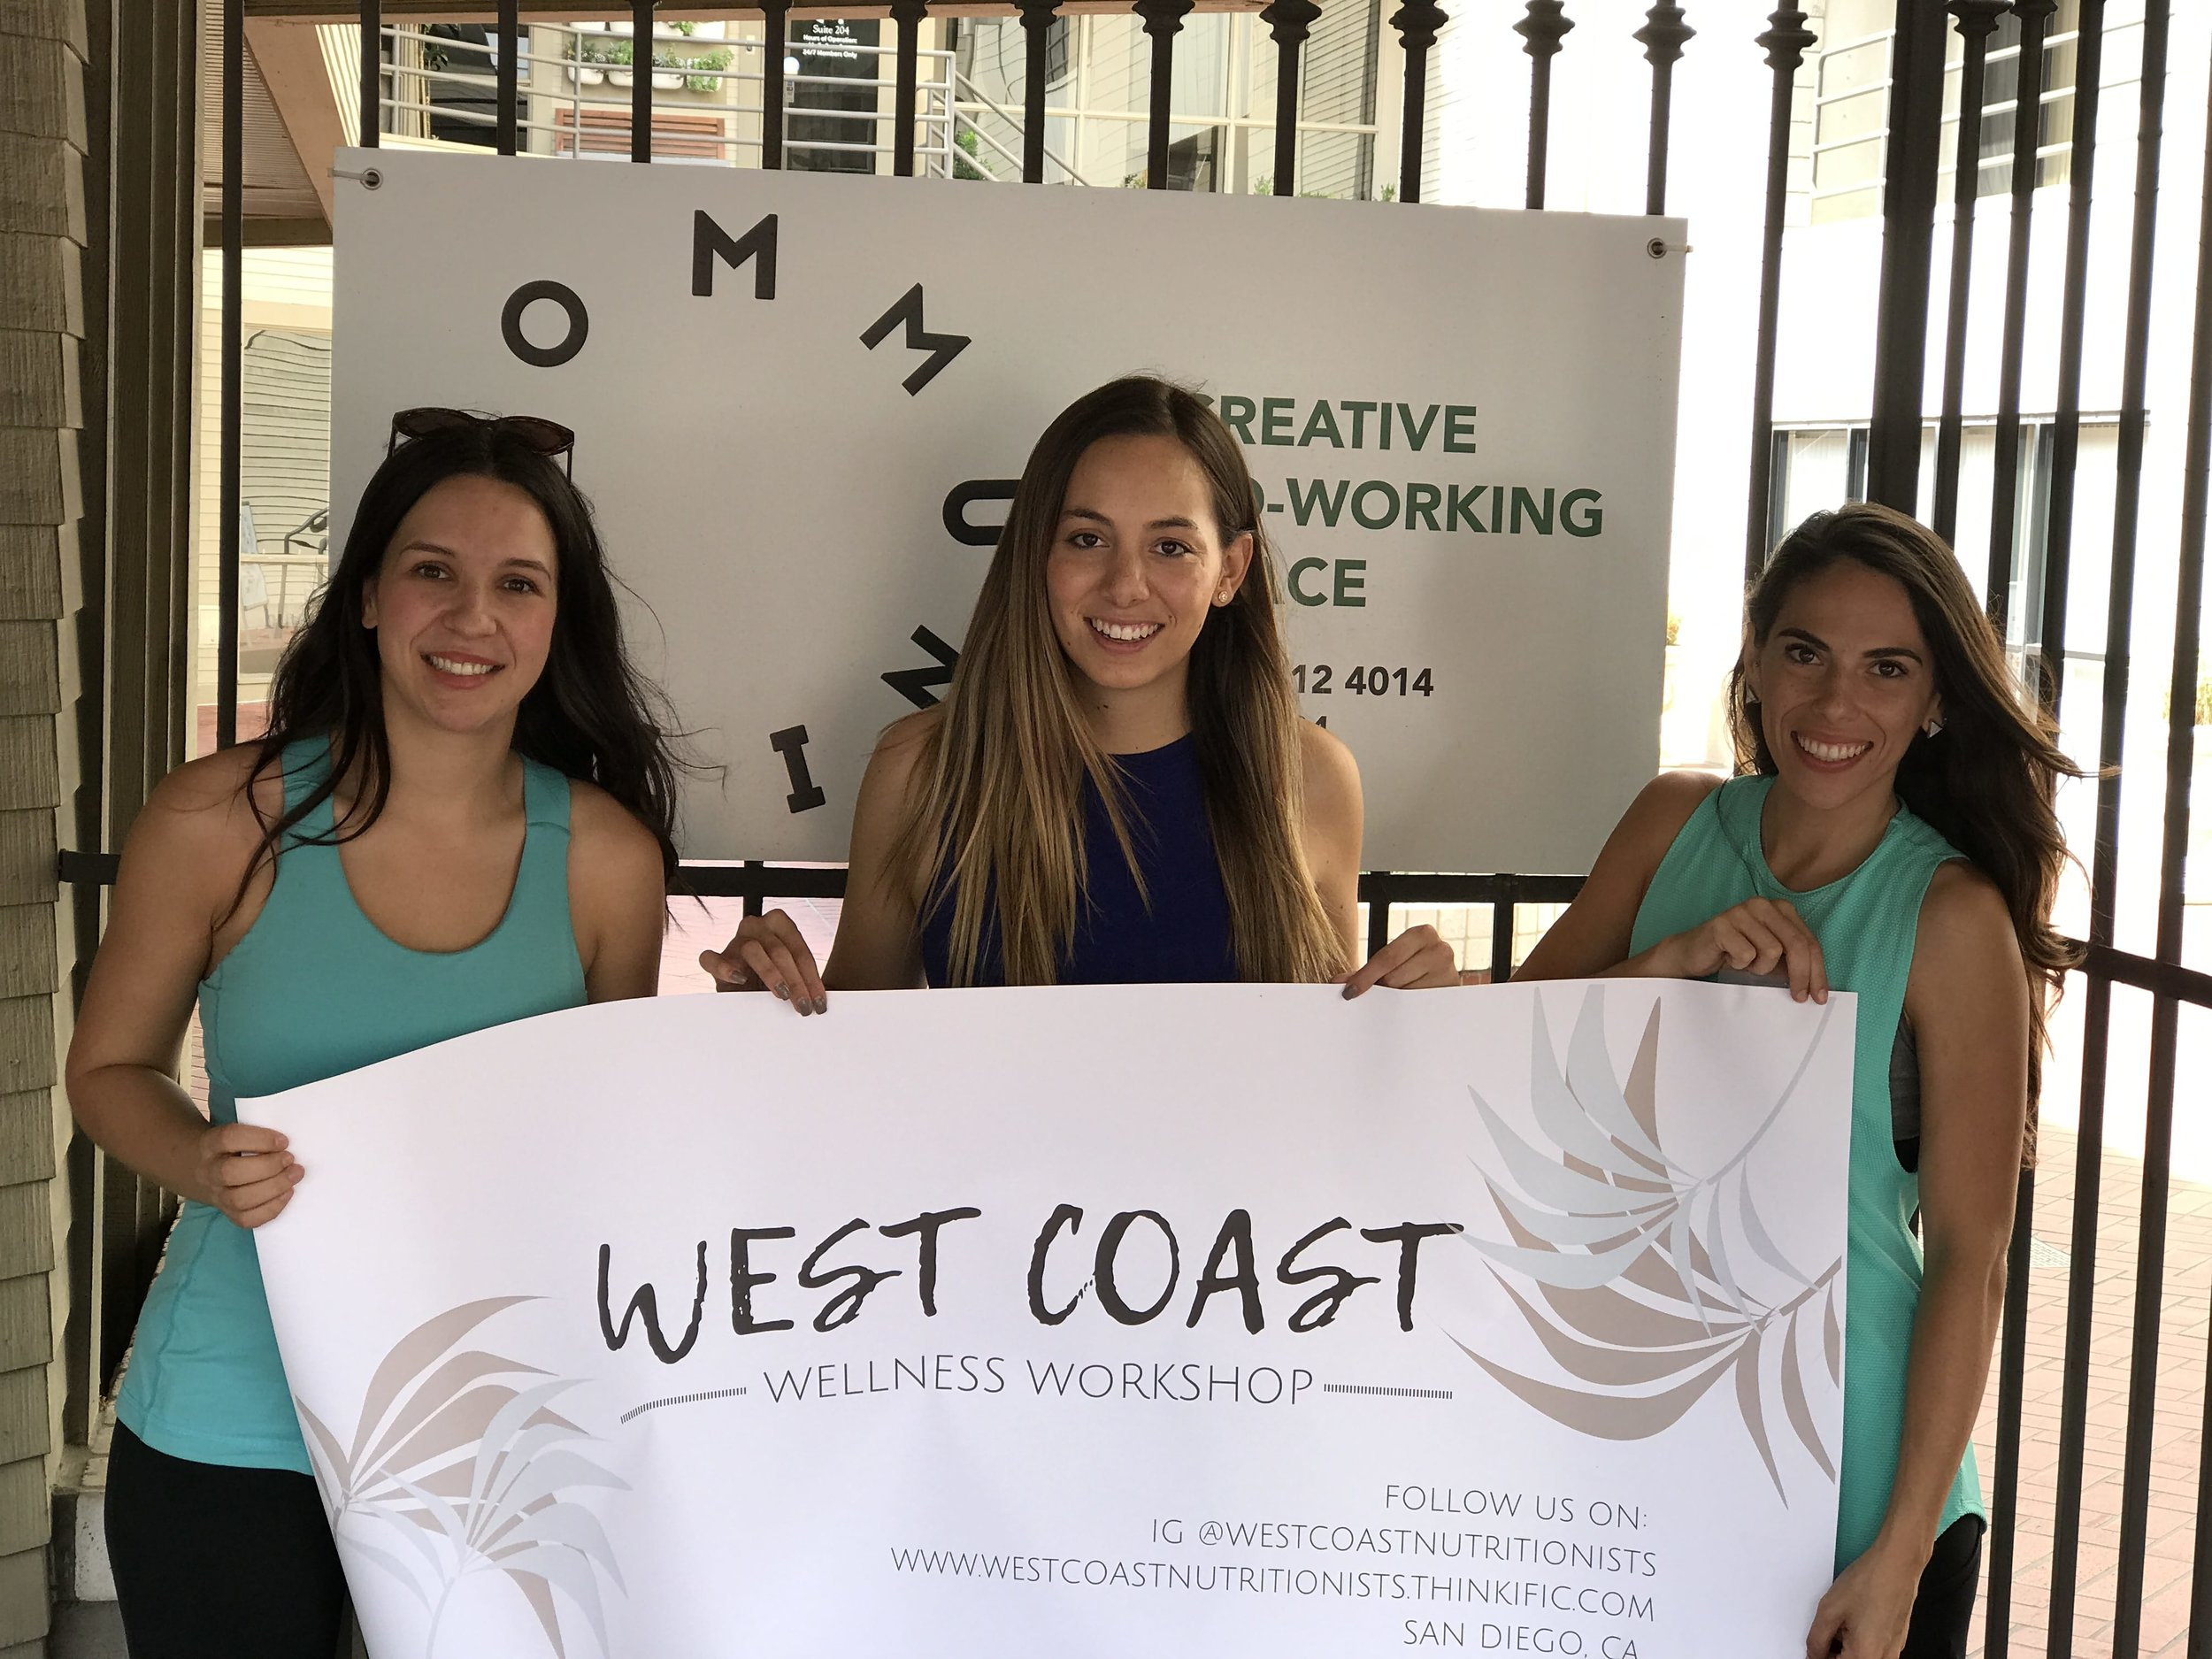 The three West Coast Nutritionists: Megan Lacoste, Marianna Meneses and Talita Barnaby